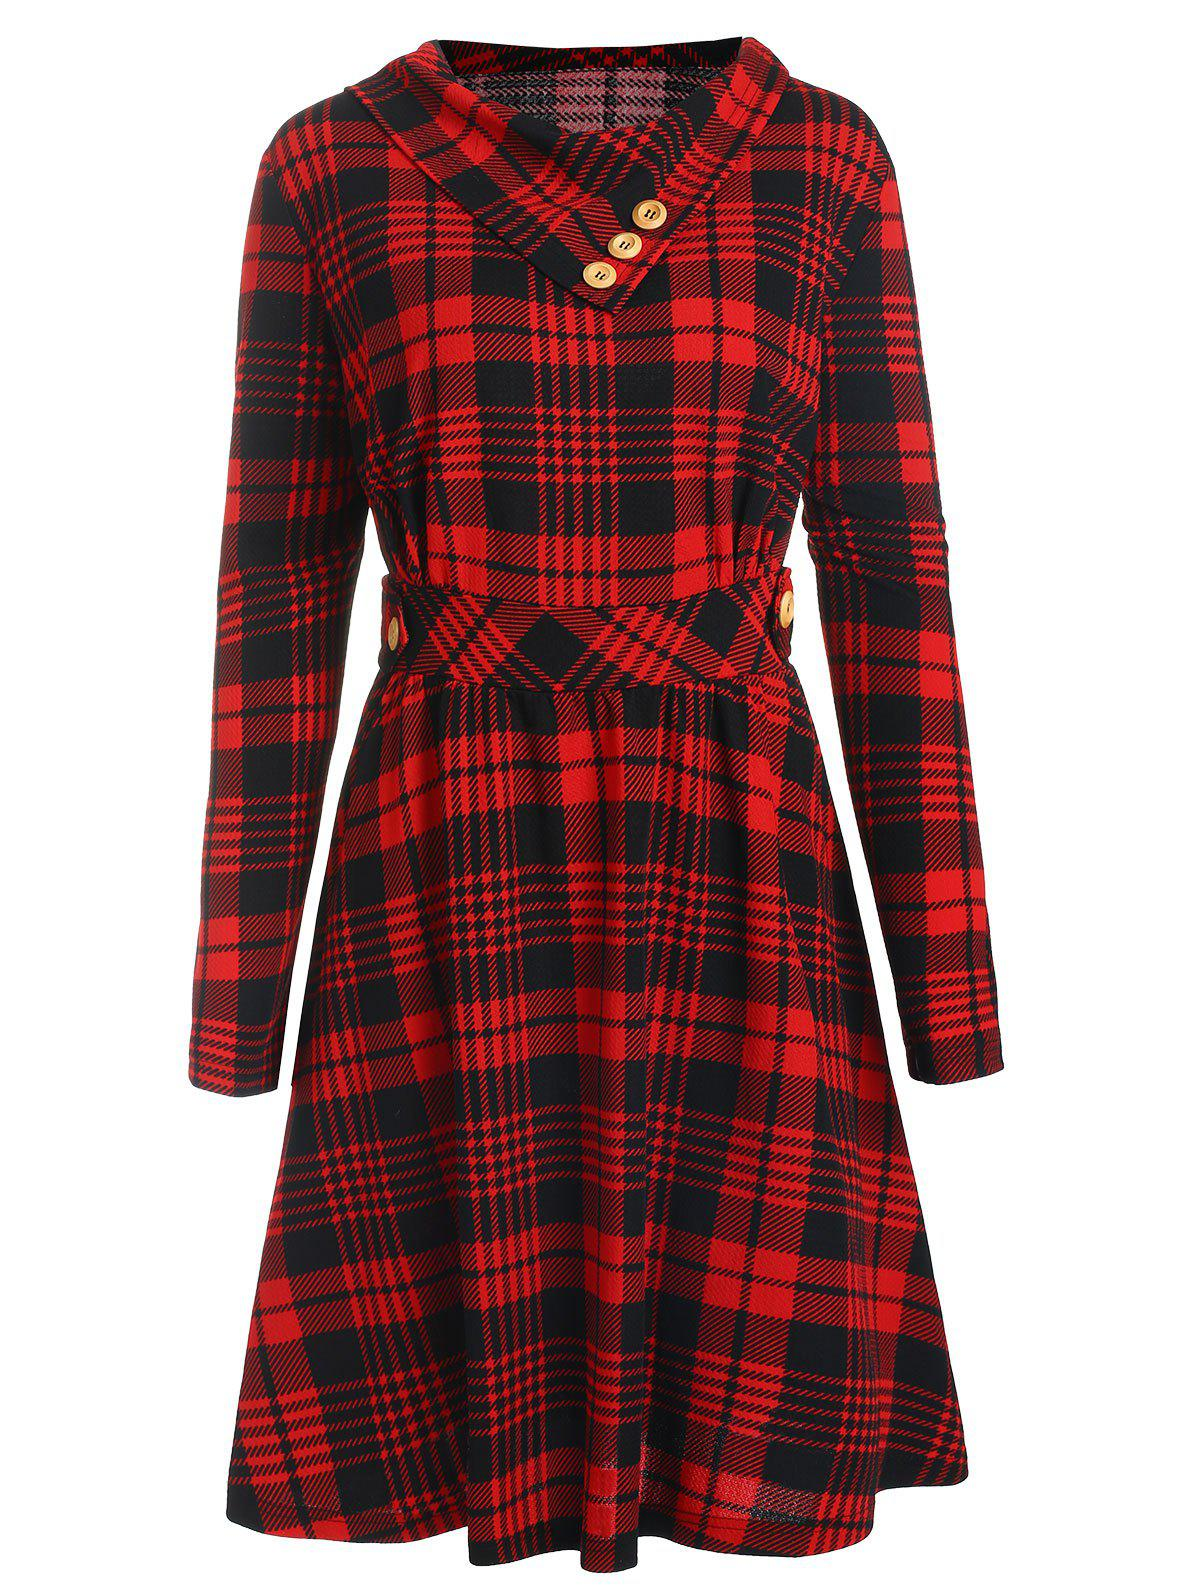 Store Plus Size Long Sleeves Plaid Flare Dress with Buttons